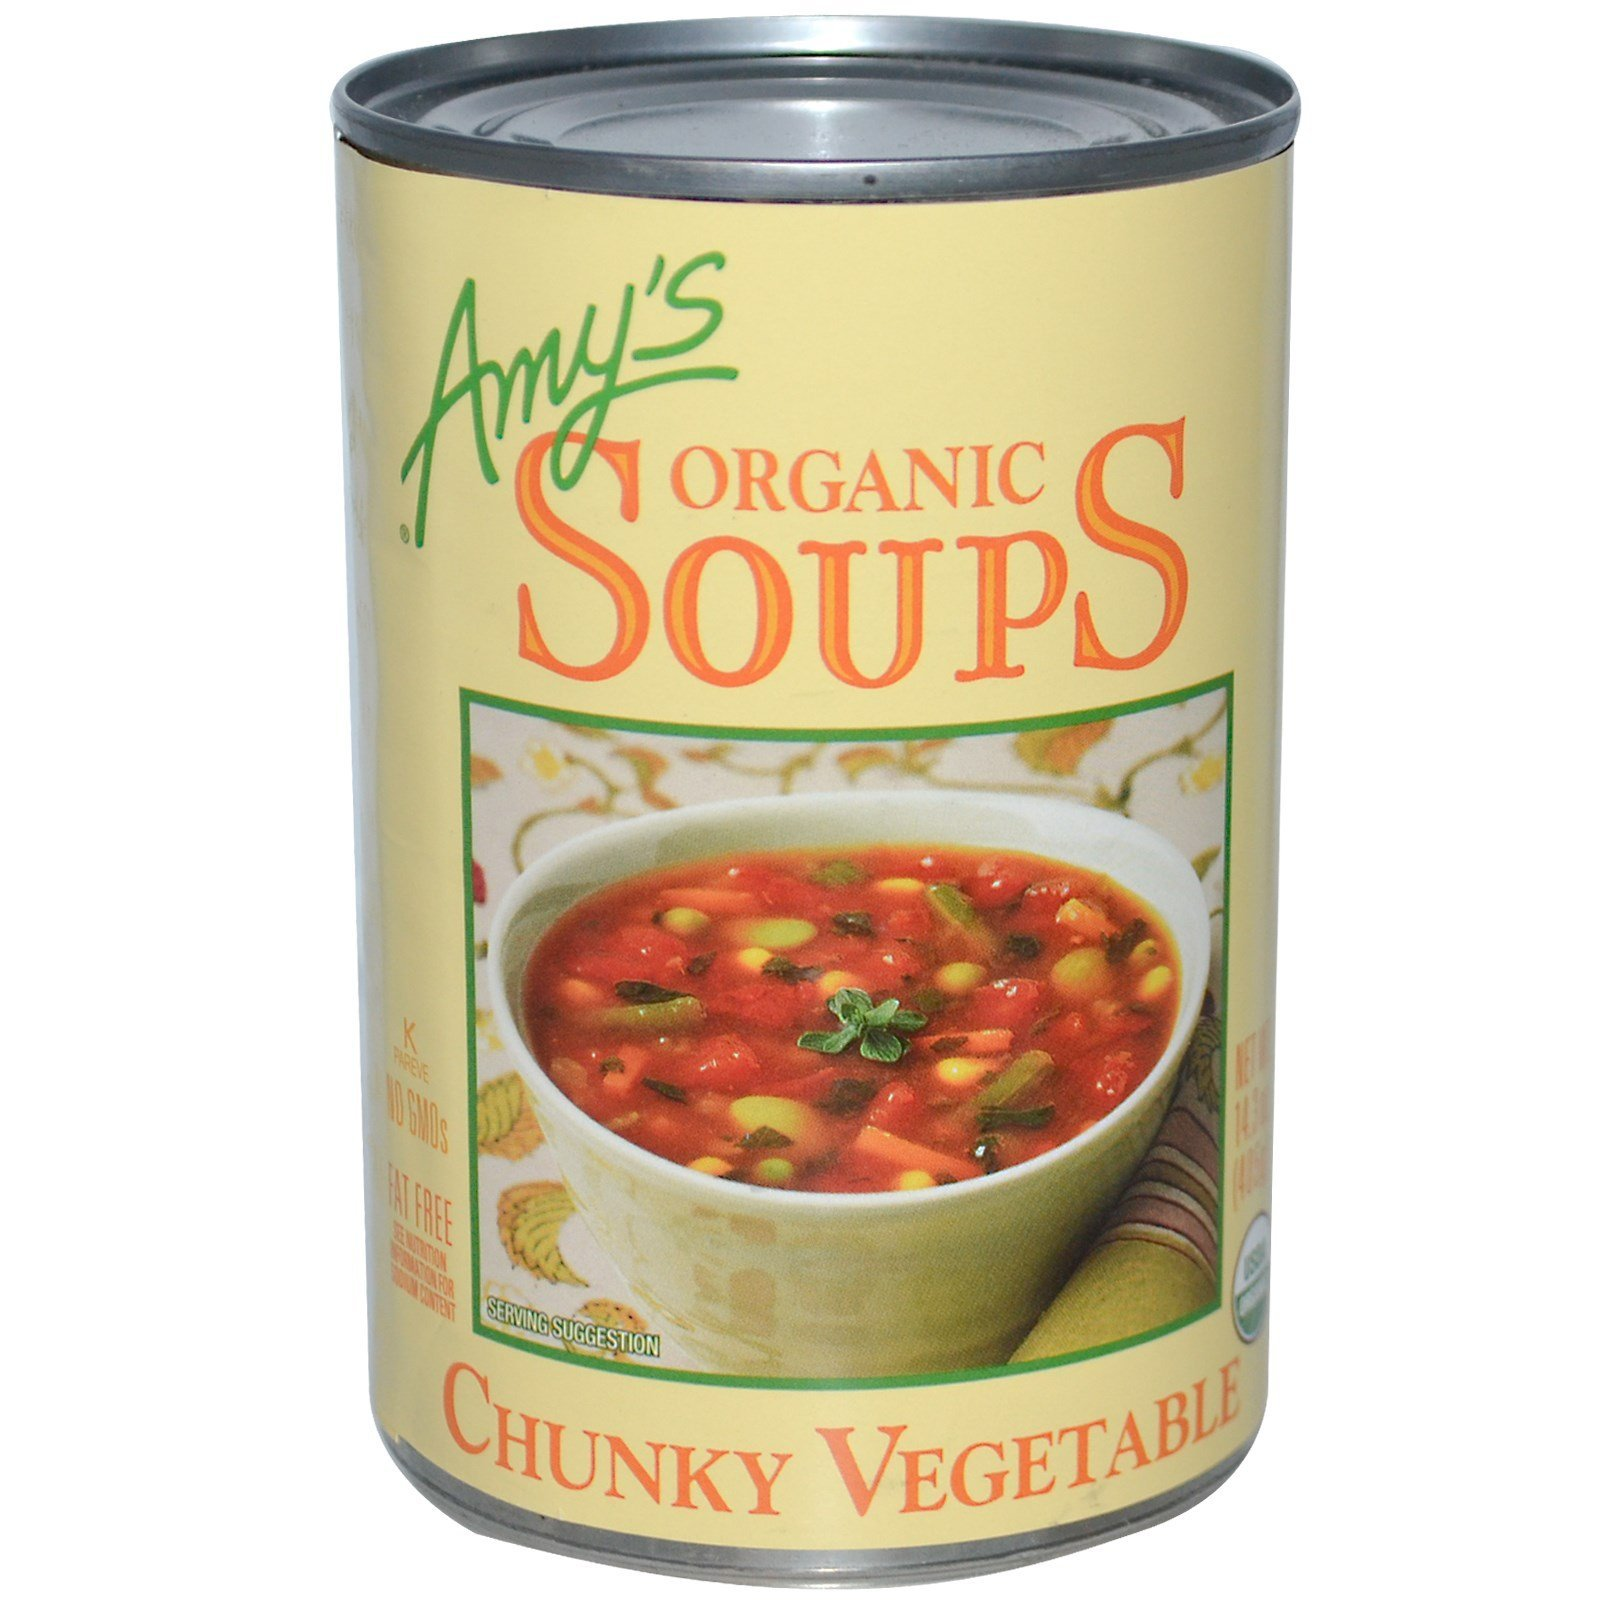 Amy's, Organic Soups, Chunky Vegetable, 14.3 oz (405 g)(Pack of 6)